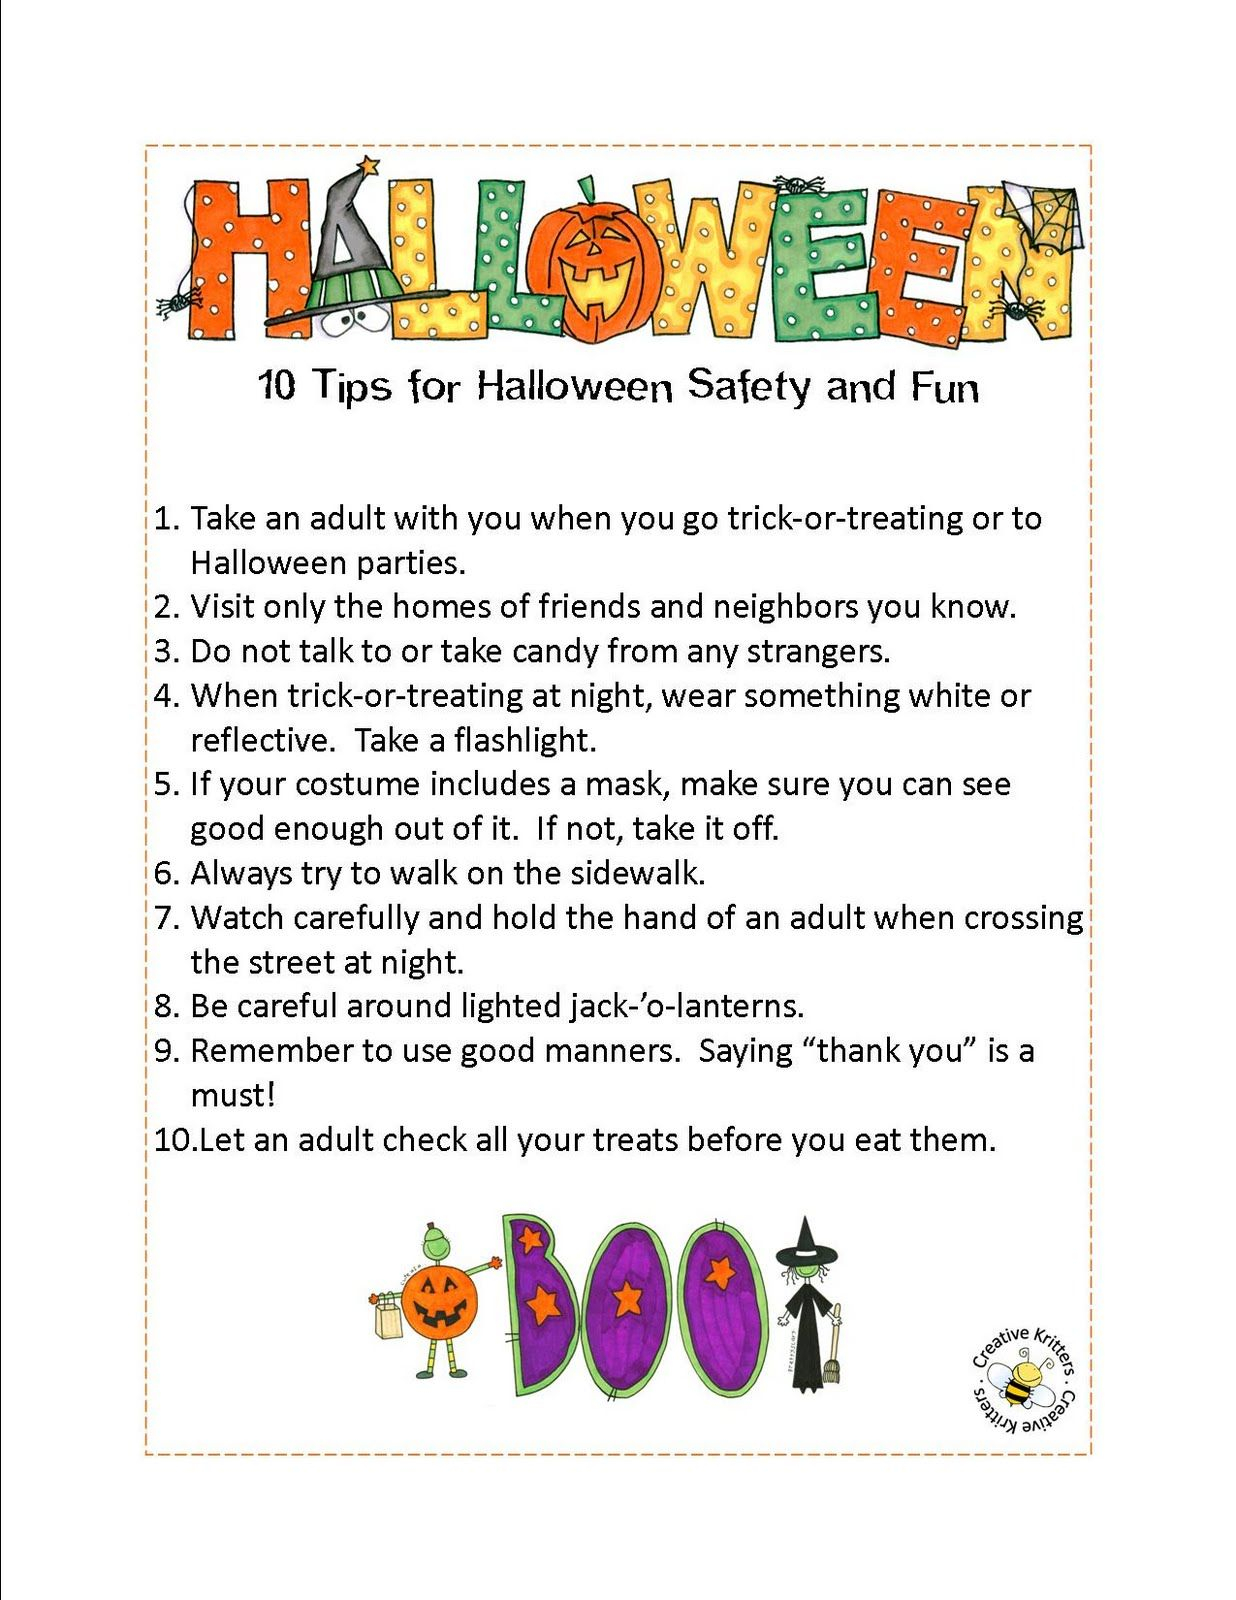 Creative Kritters | Halloween Safety, Halloween Safety Tips